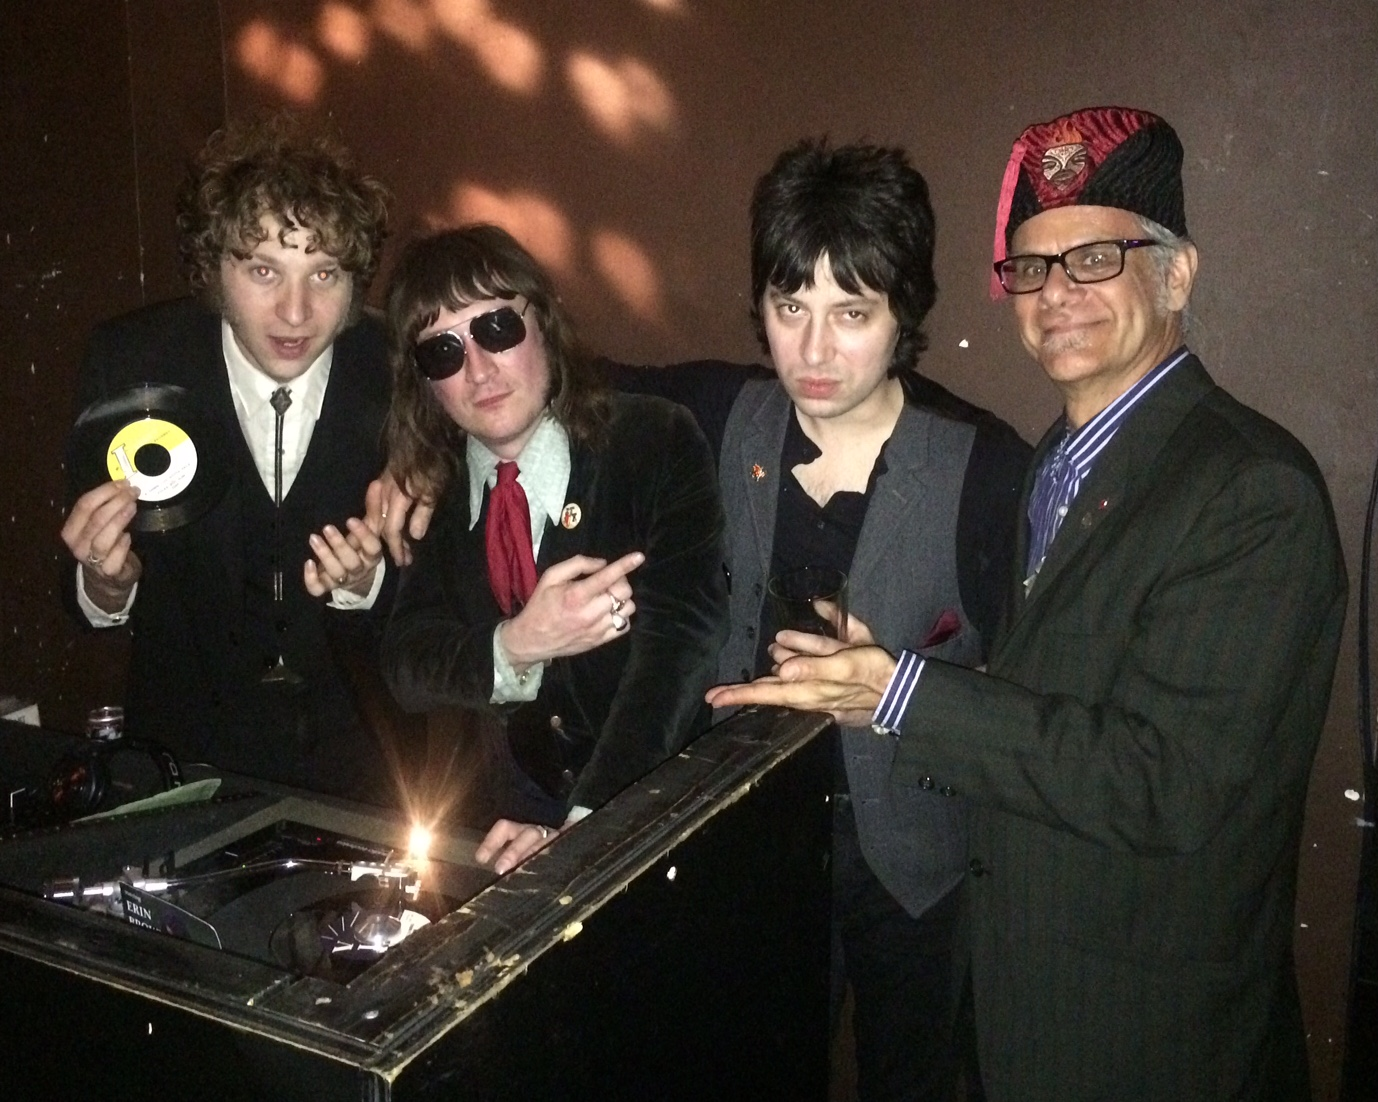 Brian Hurd, Josh Styles And Murat Aktürk Of Daddy Long Legs Swing With  Phast Phreddie The Boogaloo Omnibus At WHAM O WATUSI!!